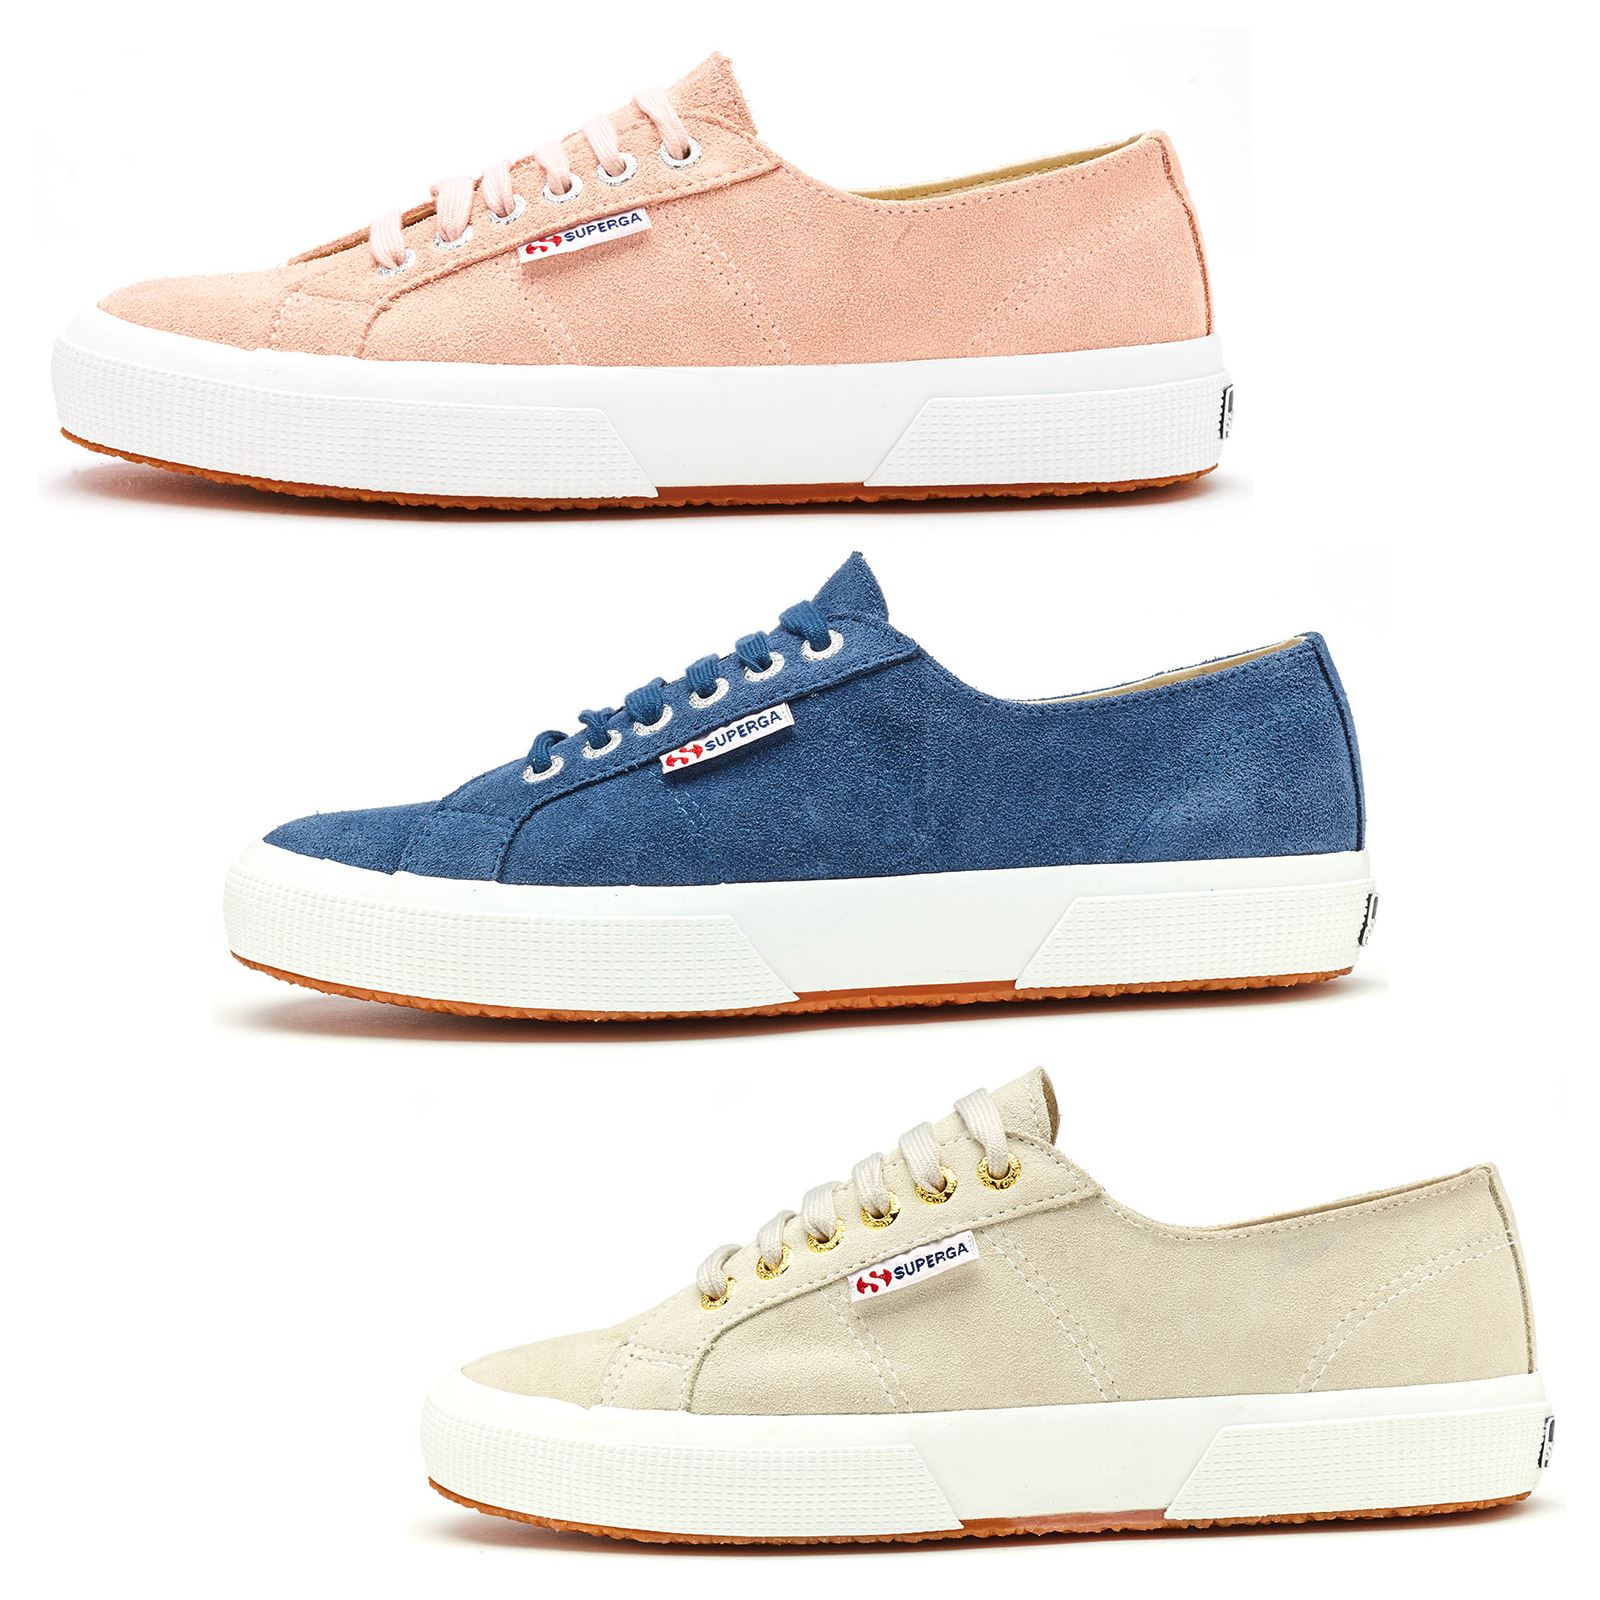 a774c6e4378 Details about Superga 2750 Sueu Suede Trainers in Blue Shadow